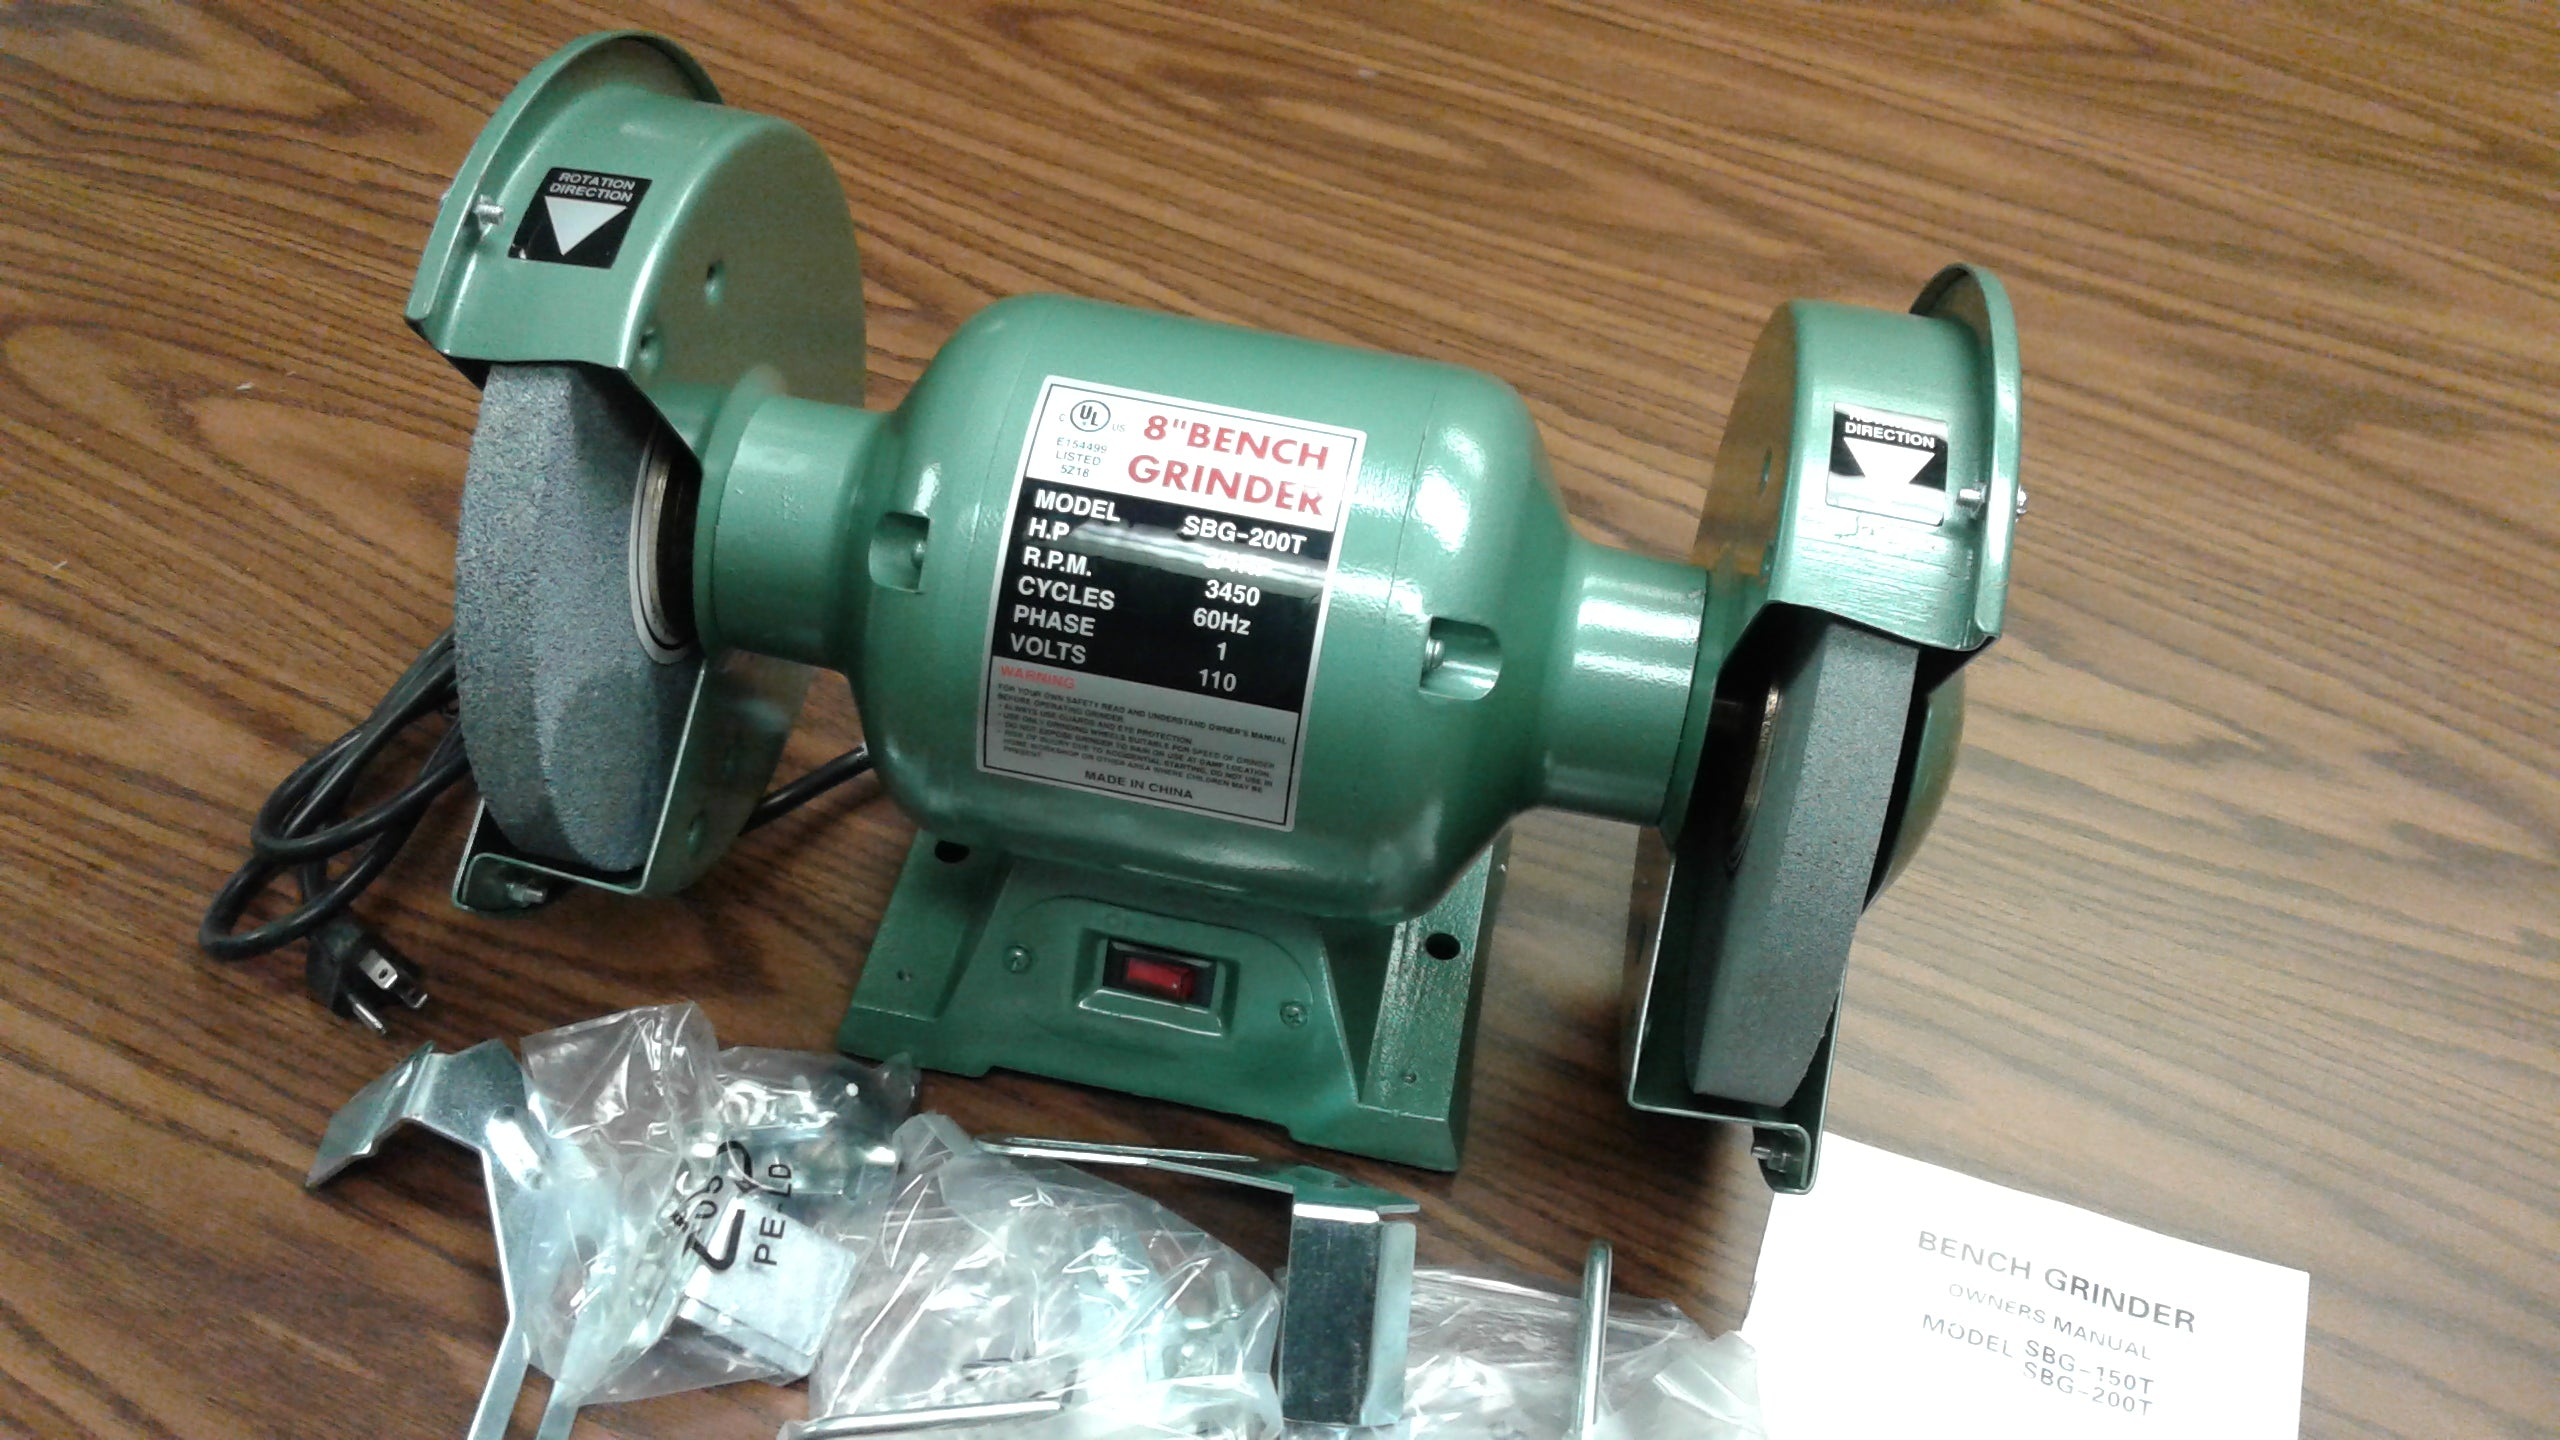 Groovy 8 Bench Grinder 3 4Hp Heavy Duty Ul Listed W Eye Pdpeps Interior Chair Design Pdpepsorg